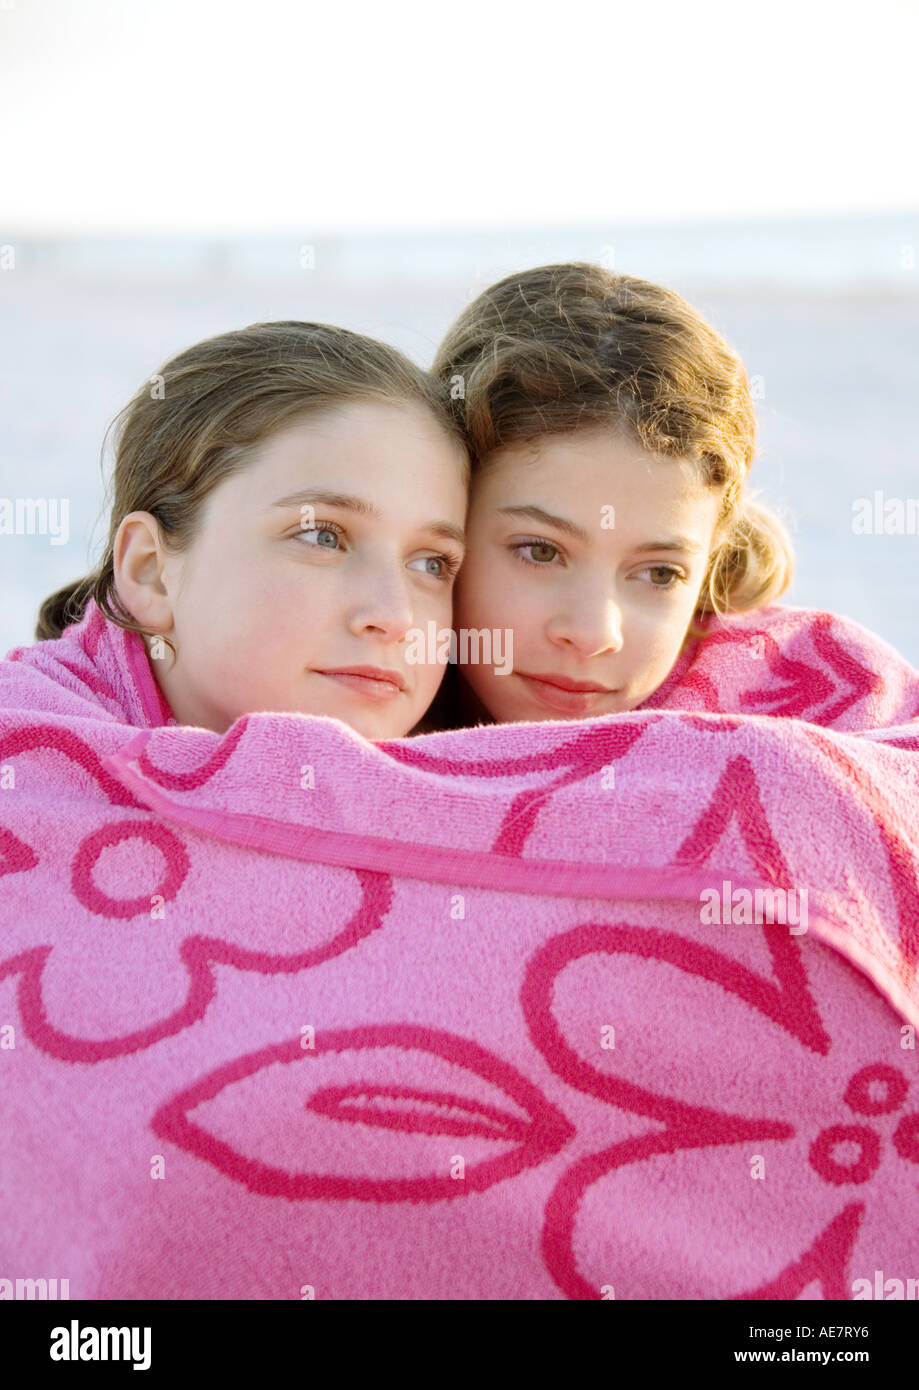 Two girls wrapped in towel together - Stock Image